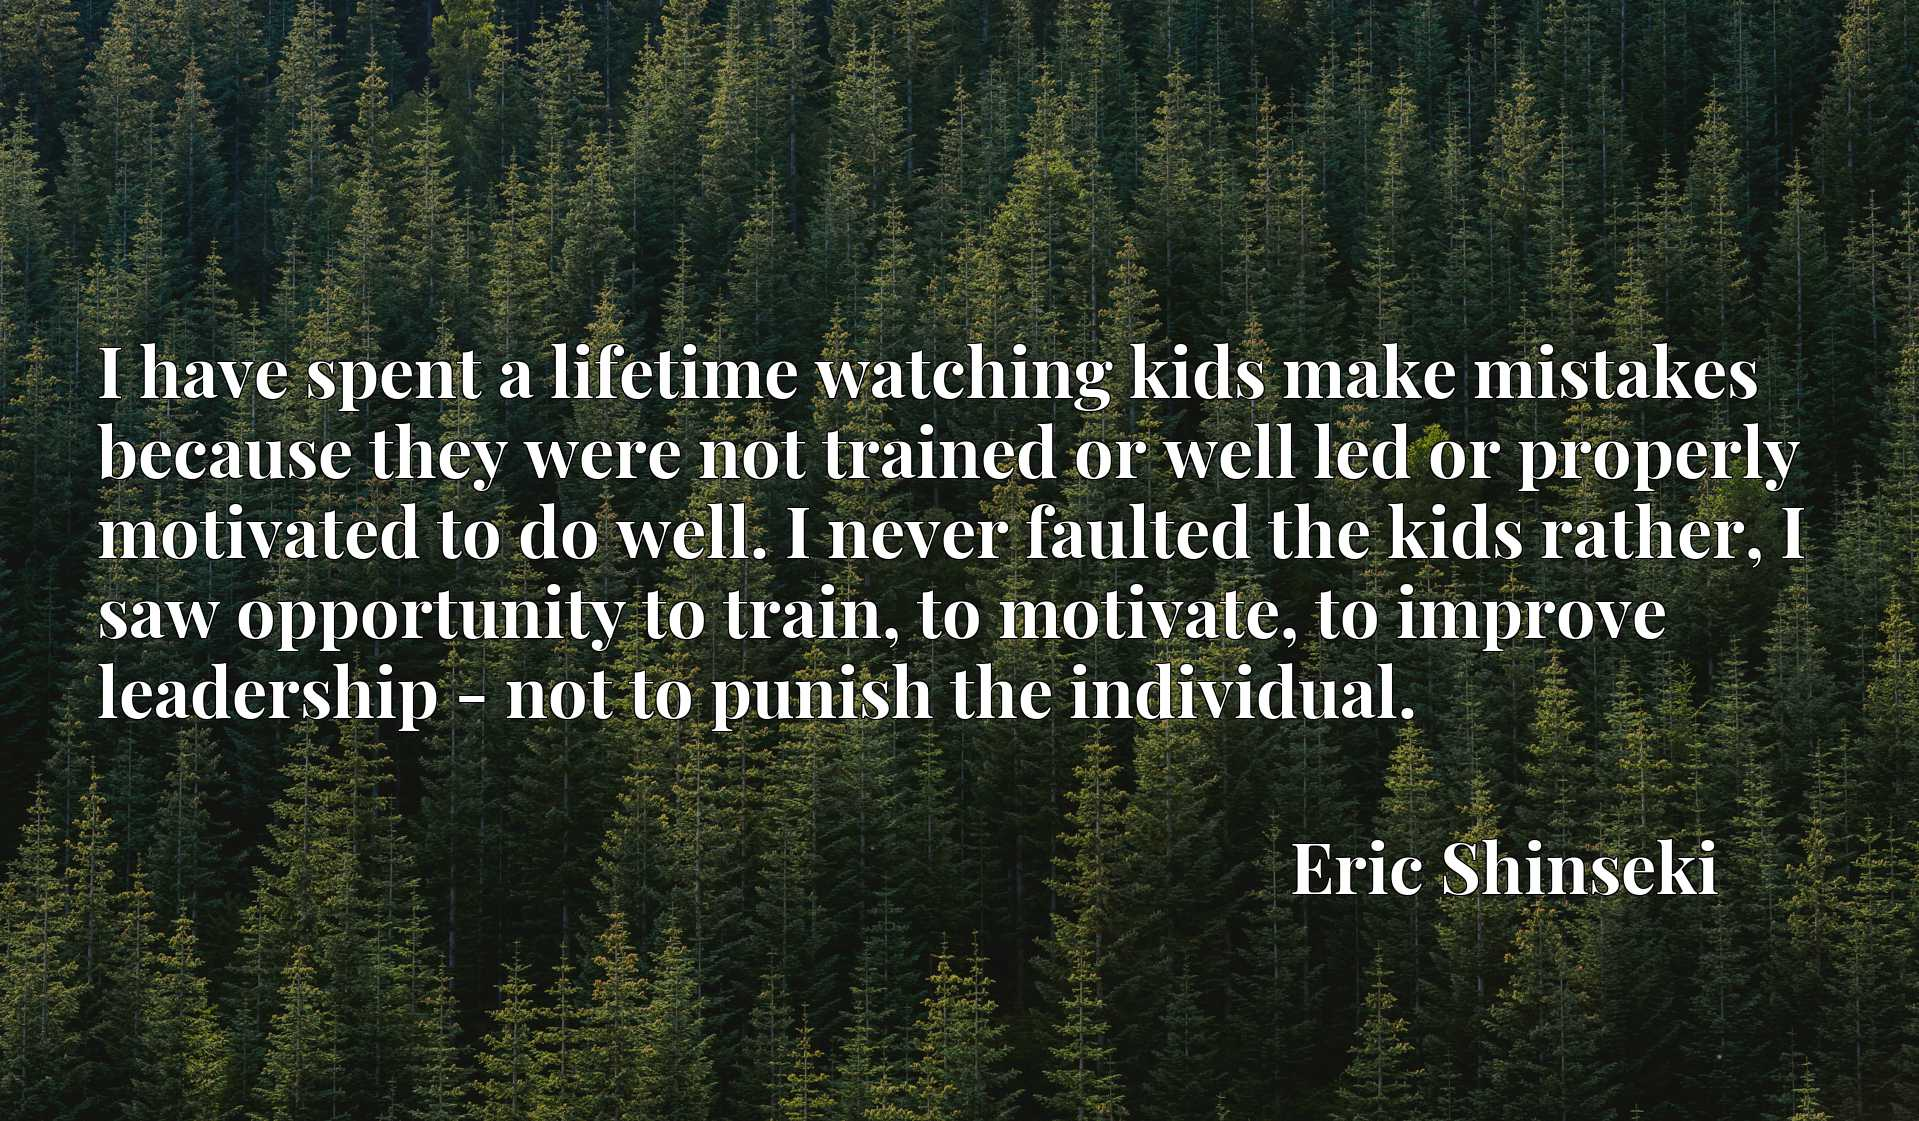 I have spent a lifetime watching kids make mistakes because they were not trained or well led or properly motivated to do well. I never faulted the kids rather, I saw opportunity to train, to motivate, to improve leadership - not to punish the individual.